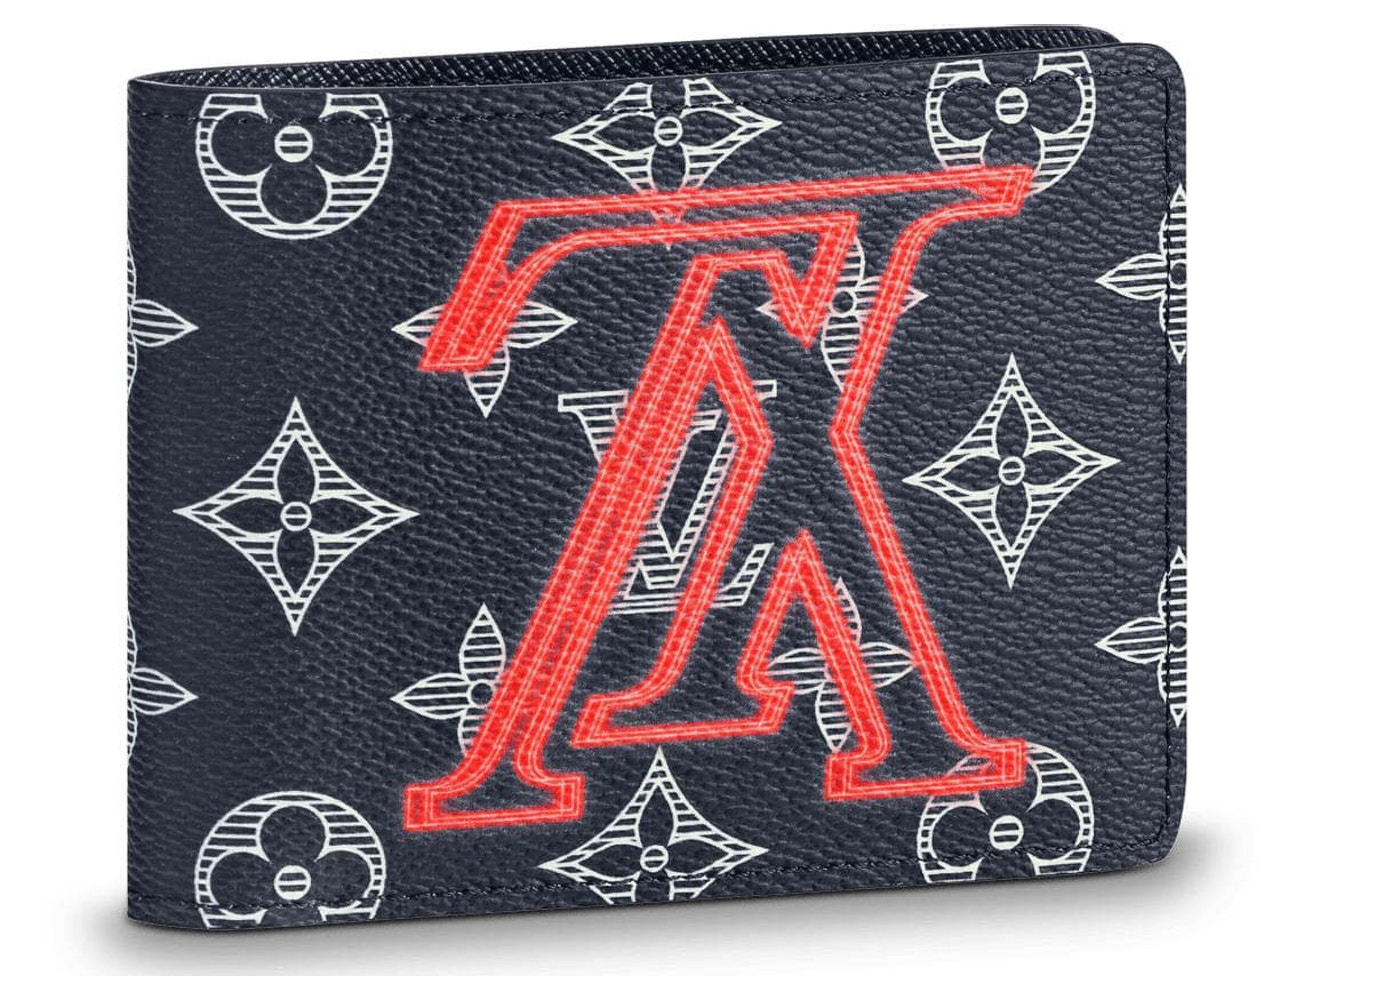 b48825c1fcd1 Louis Vuitton Multiple Wallet Monogram Upside Down Ink Navy. Monogram  Upside Down Ink Navy